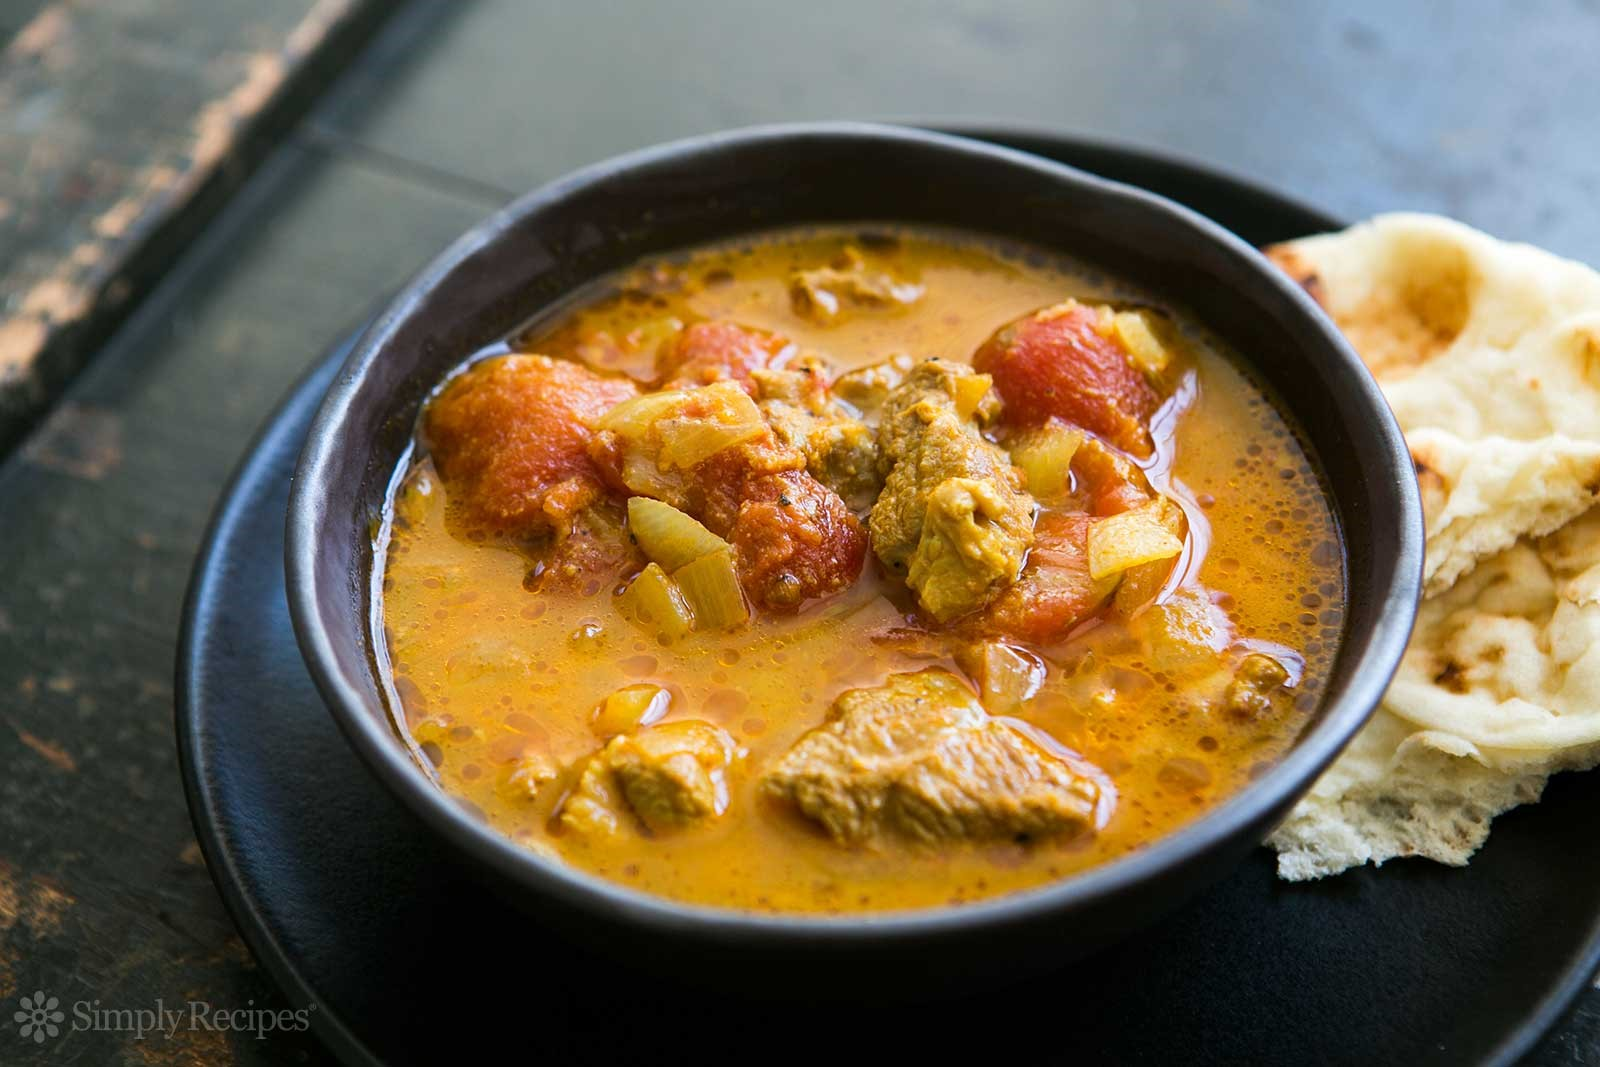 Best Halal restaurant in Melbourne - Carlton - The savory Lamb Korma Curry